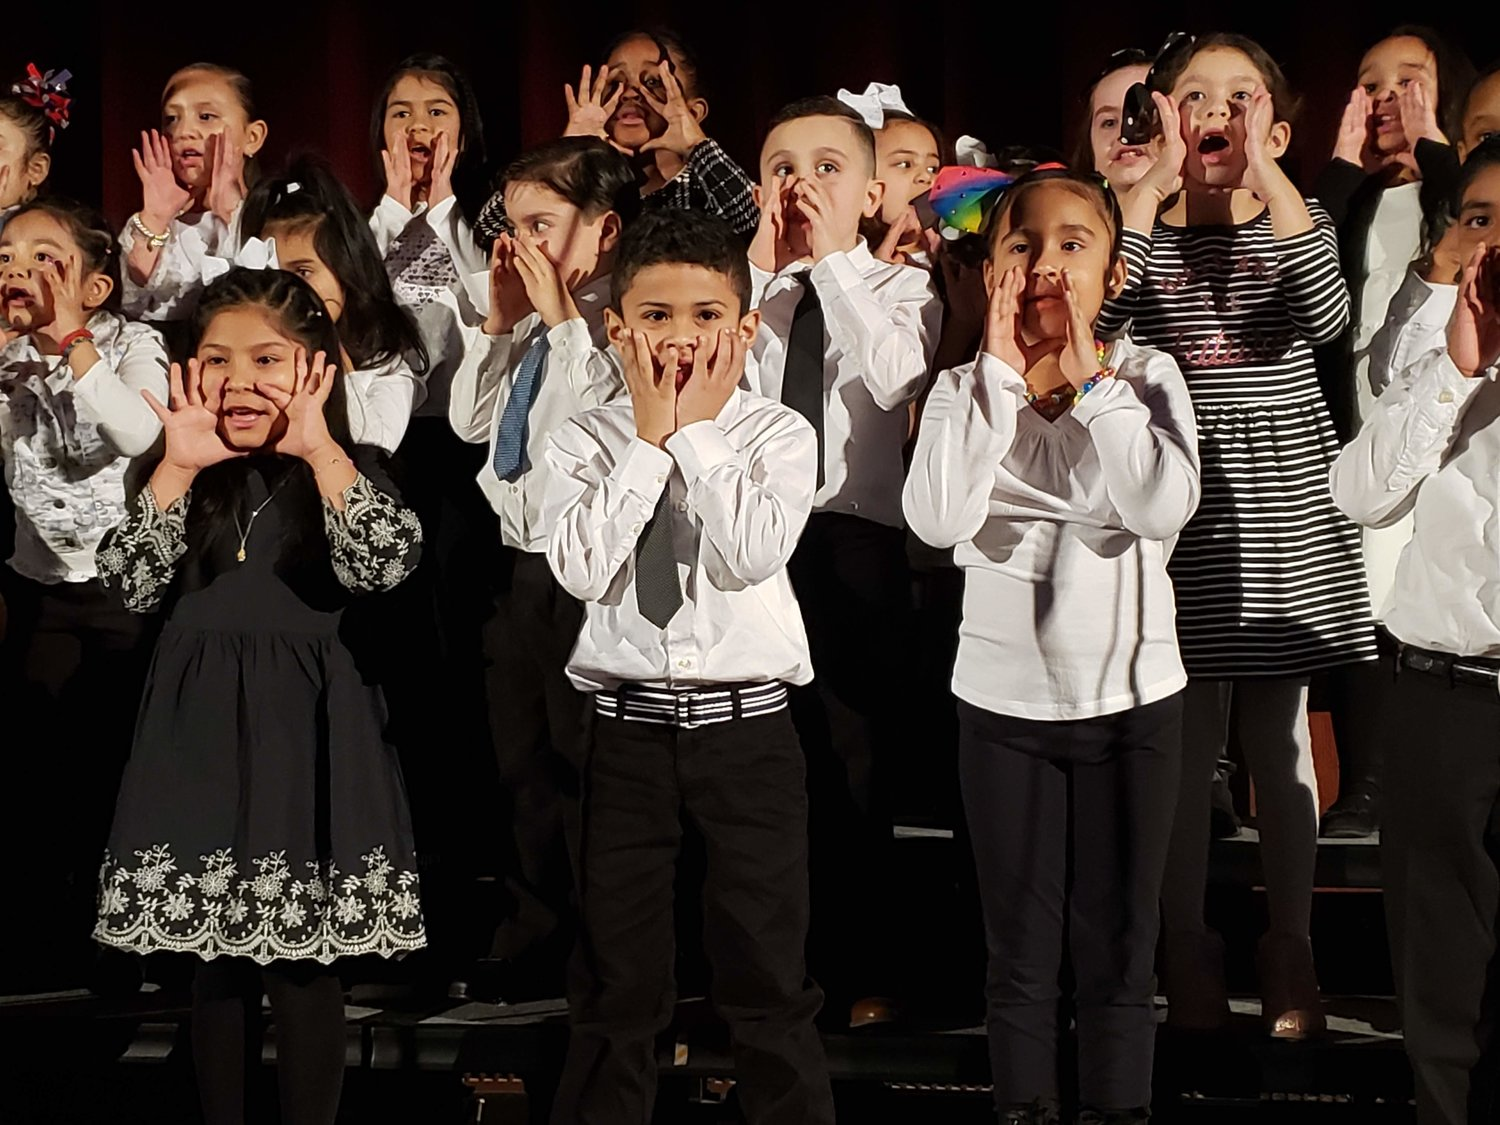 The Kindergarten Chorus from Columbus Avenue School performed a song dedicated to civil rights activities Dr. Martin Luther King, Jr..